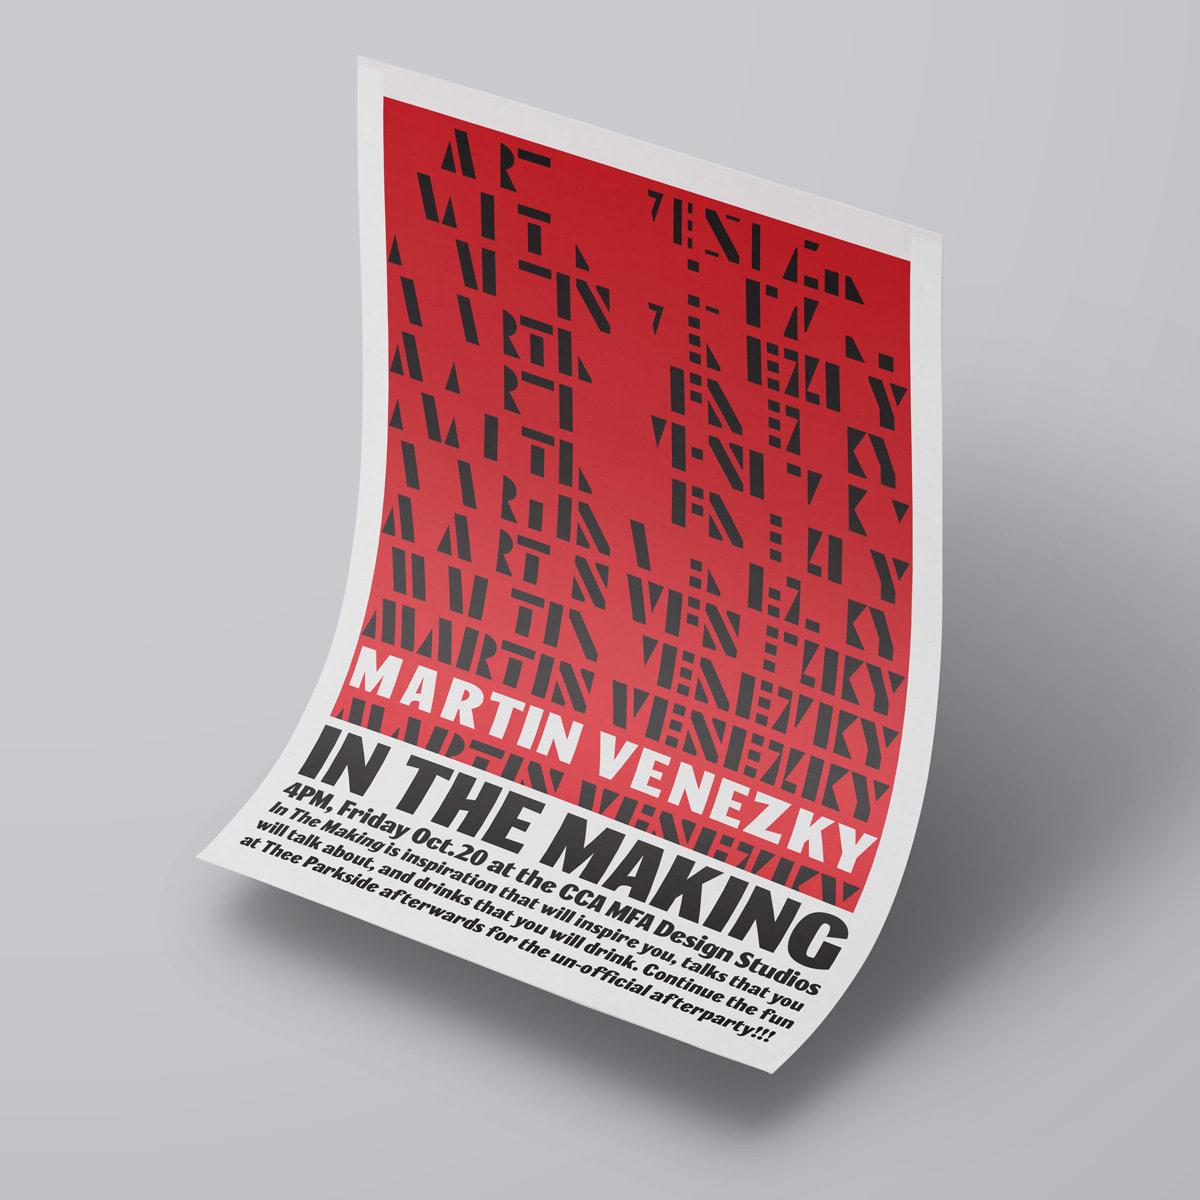 Martin Venezky Lecture Poster